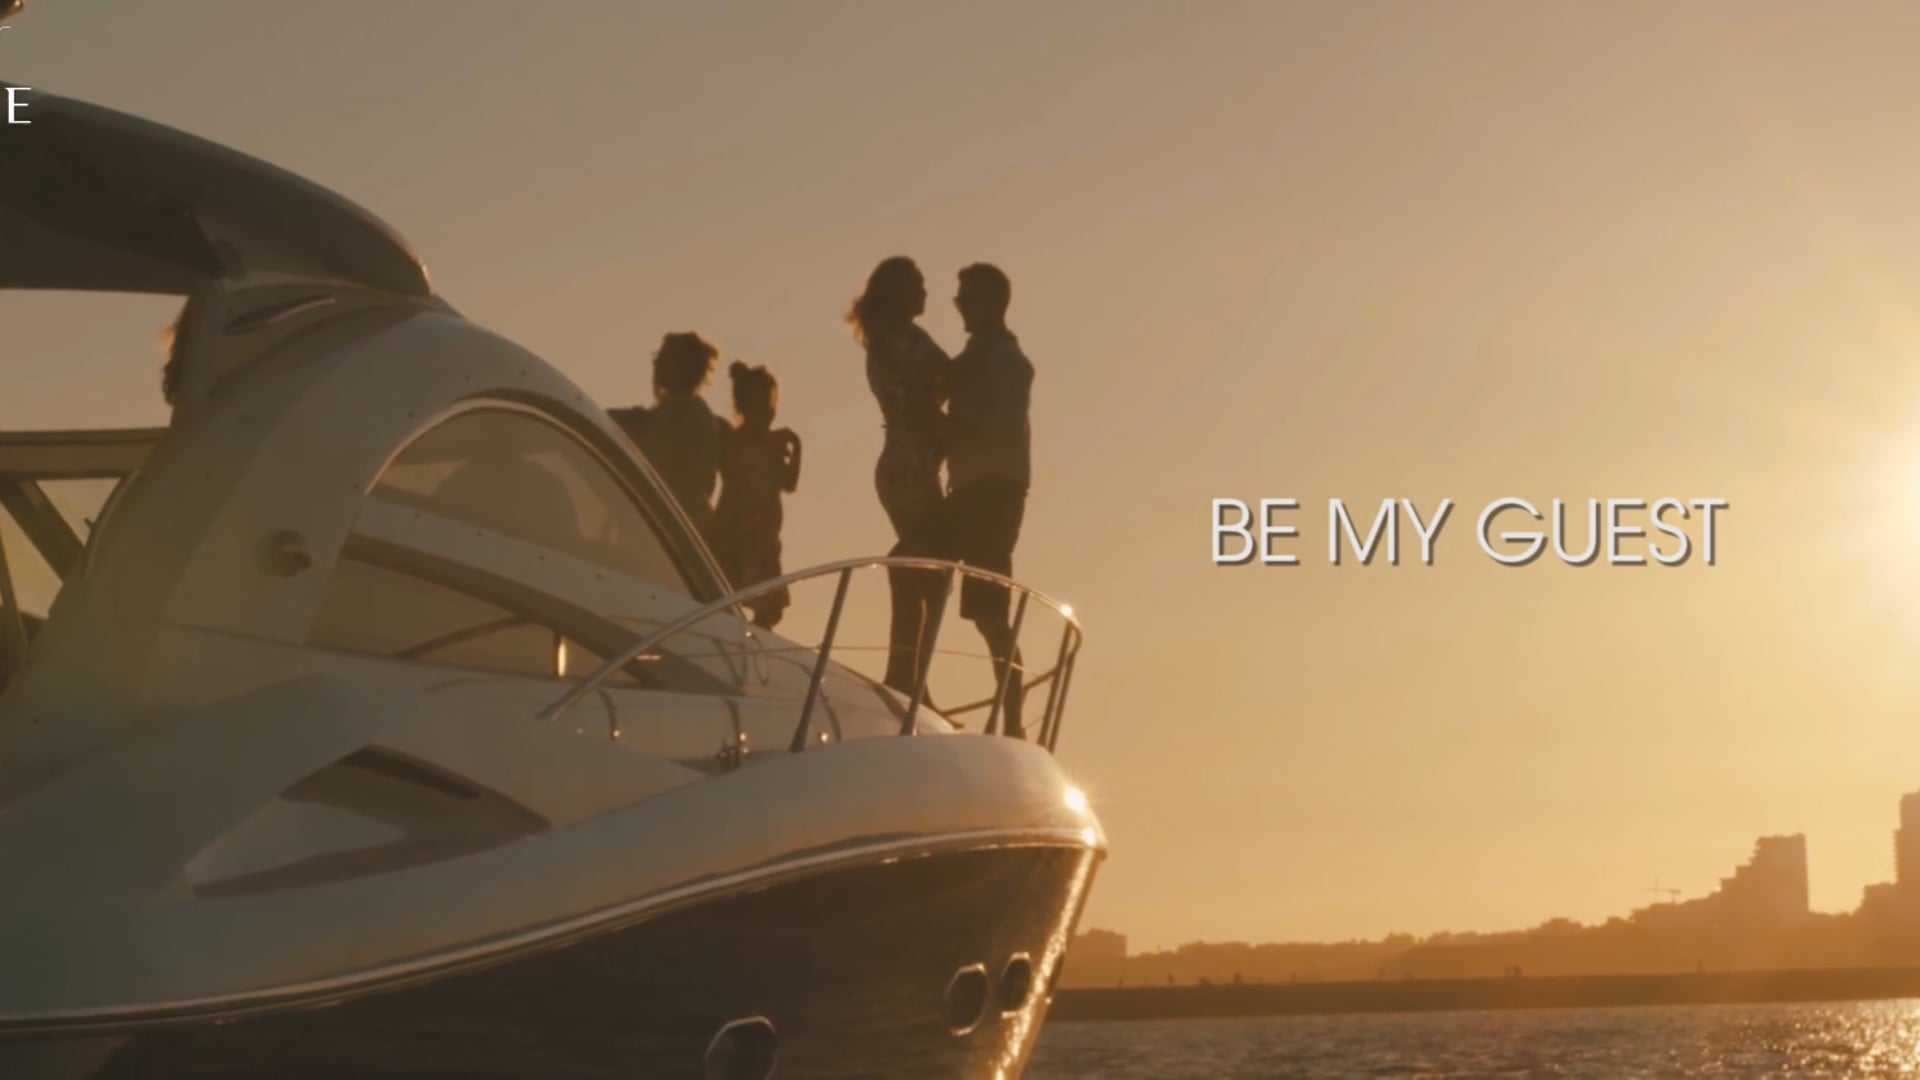 Exclusive Charter - Advertising Video